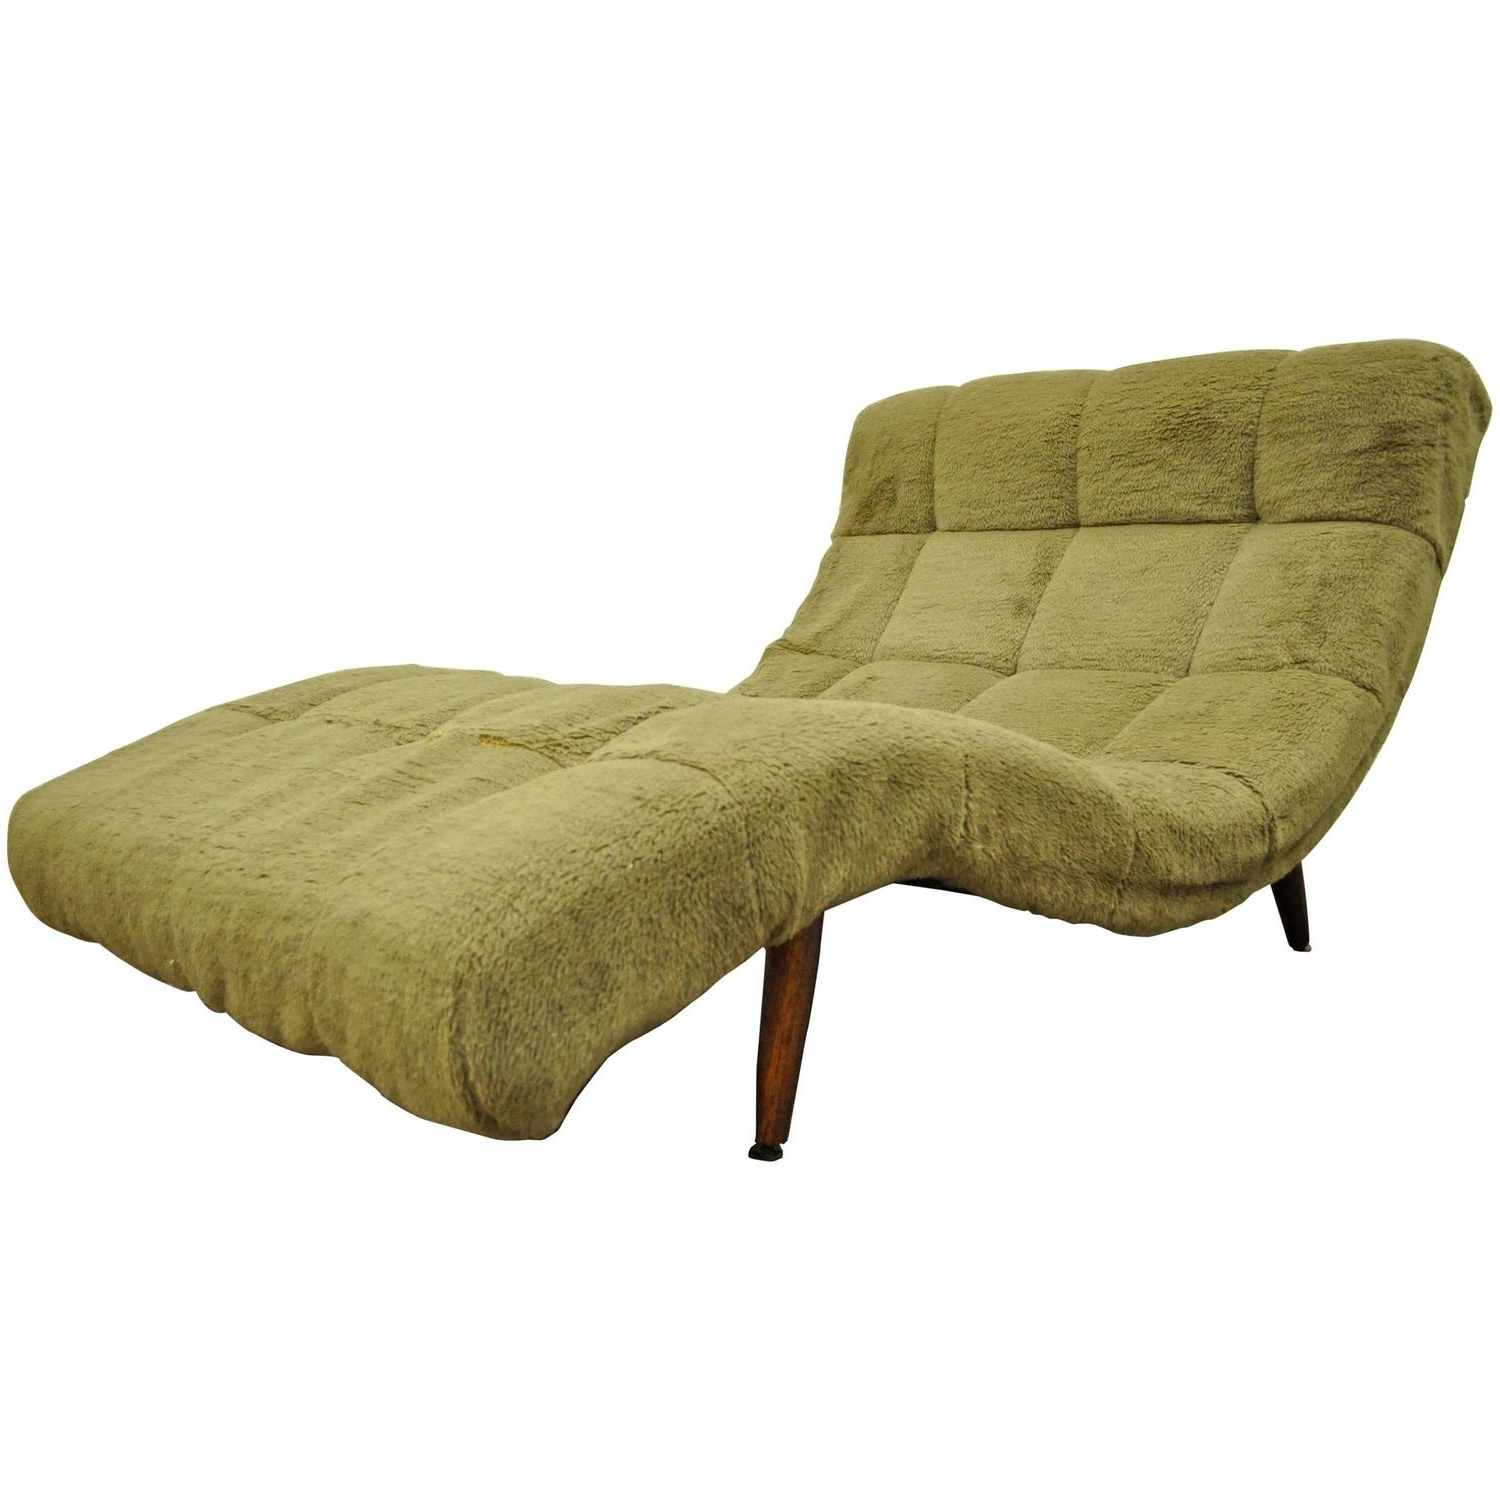 Midcentury Modern Double Wide Wave Chaise Lounge In The Style Of Pertaining To Best And Newest Green Chaise Lounges (View 6 of 15)